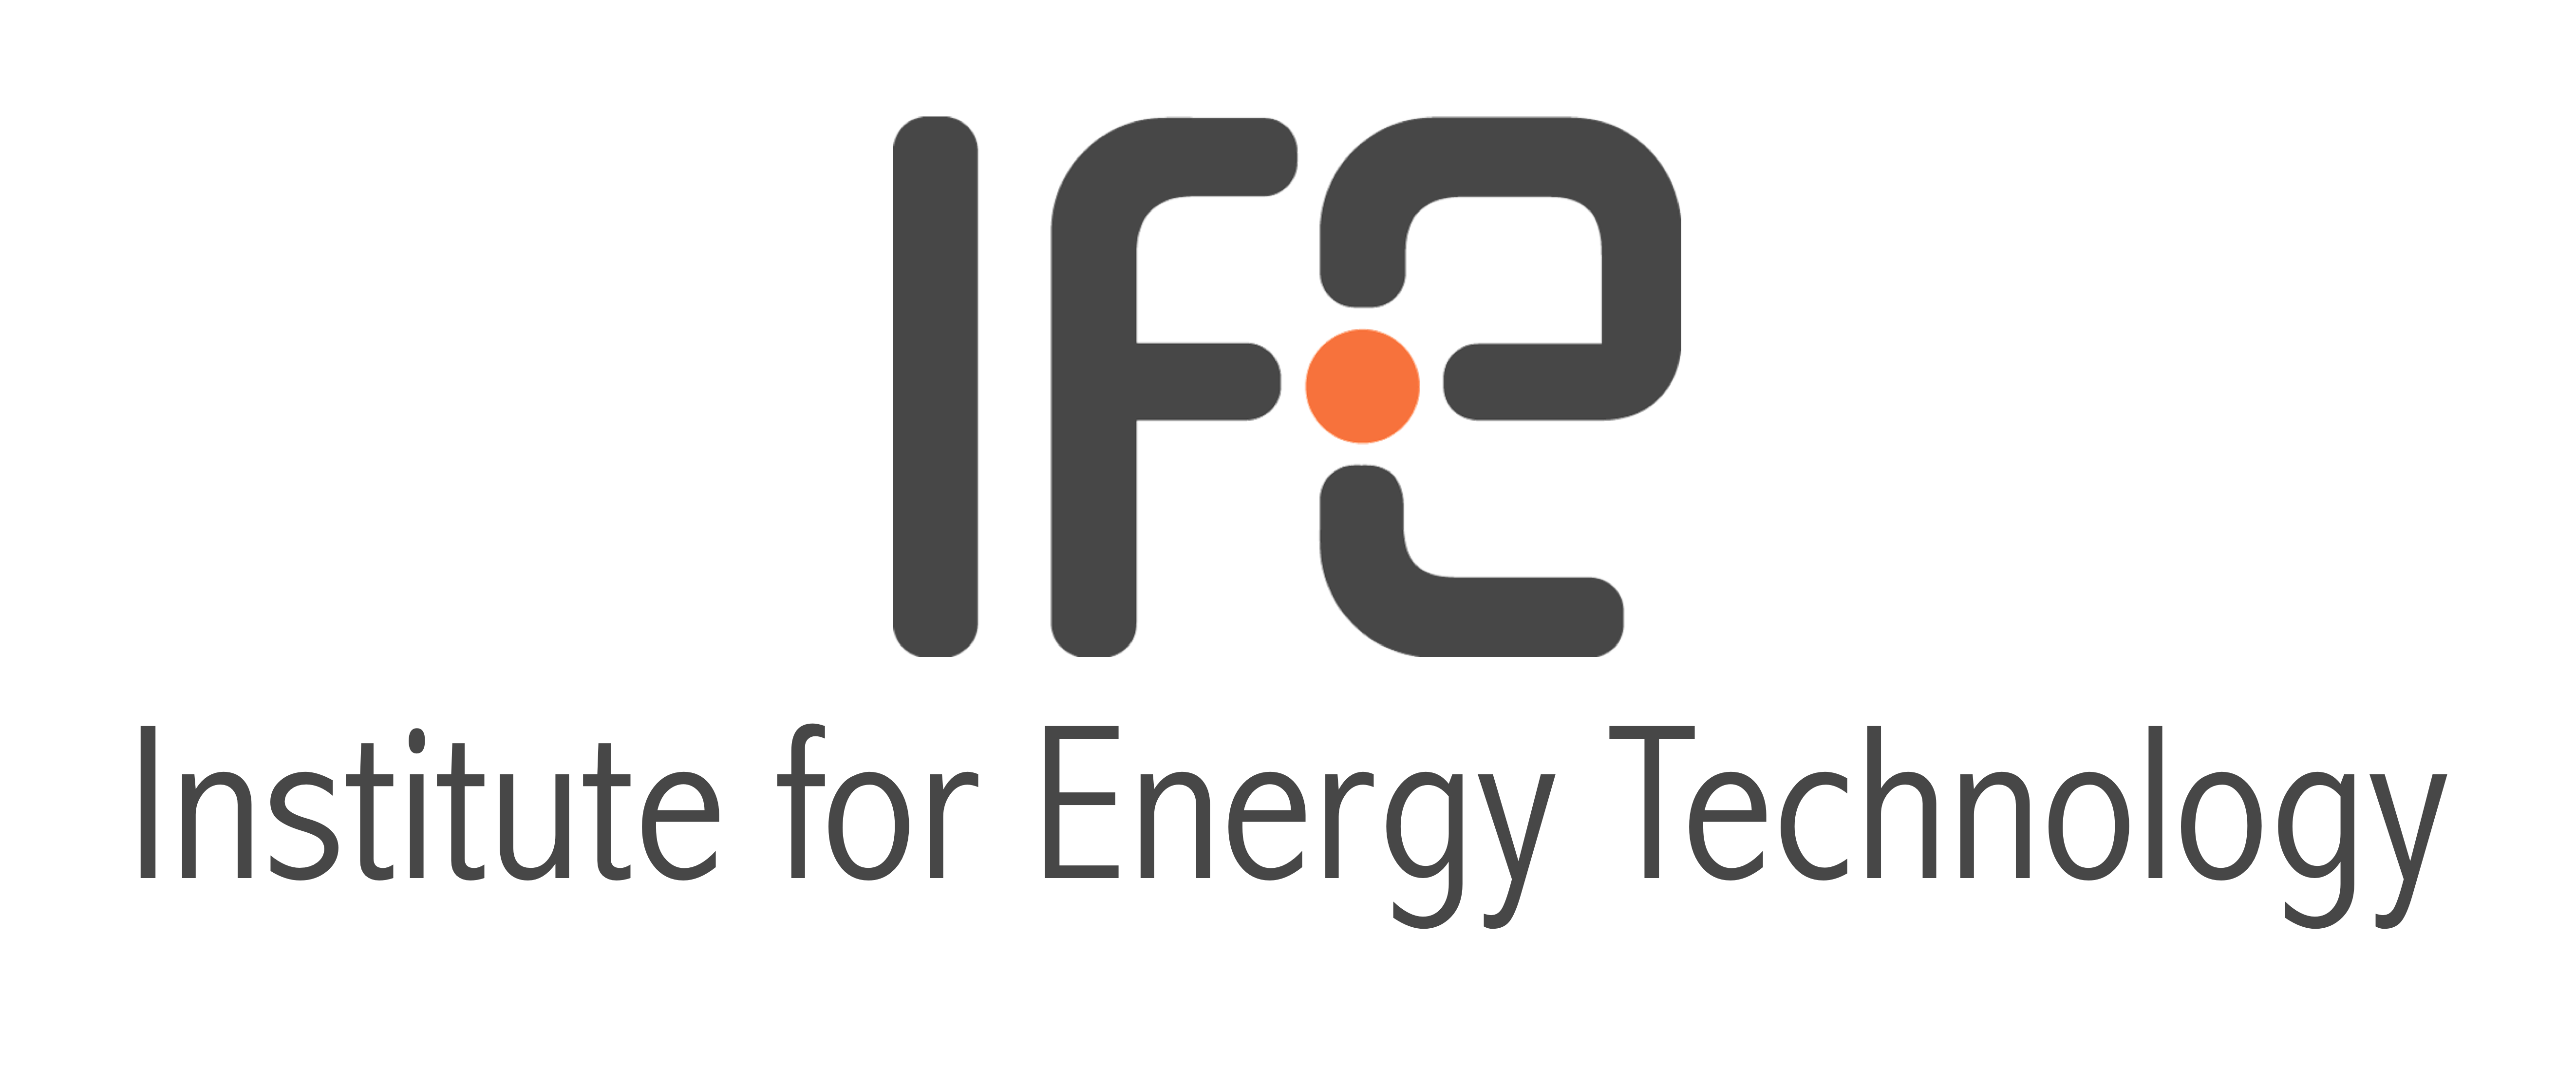 Institute for Energy Technology